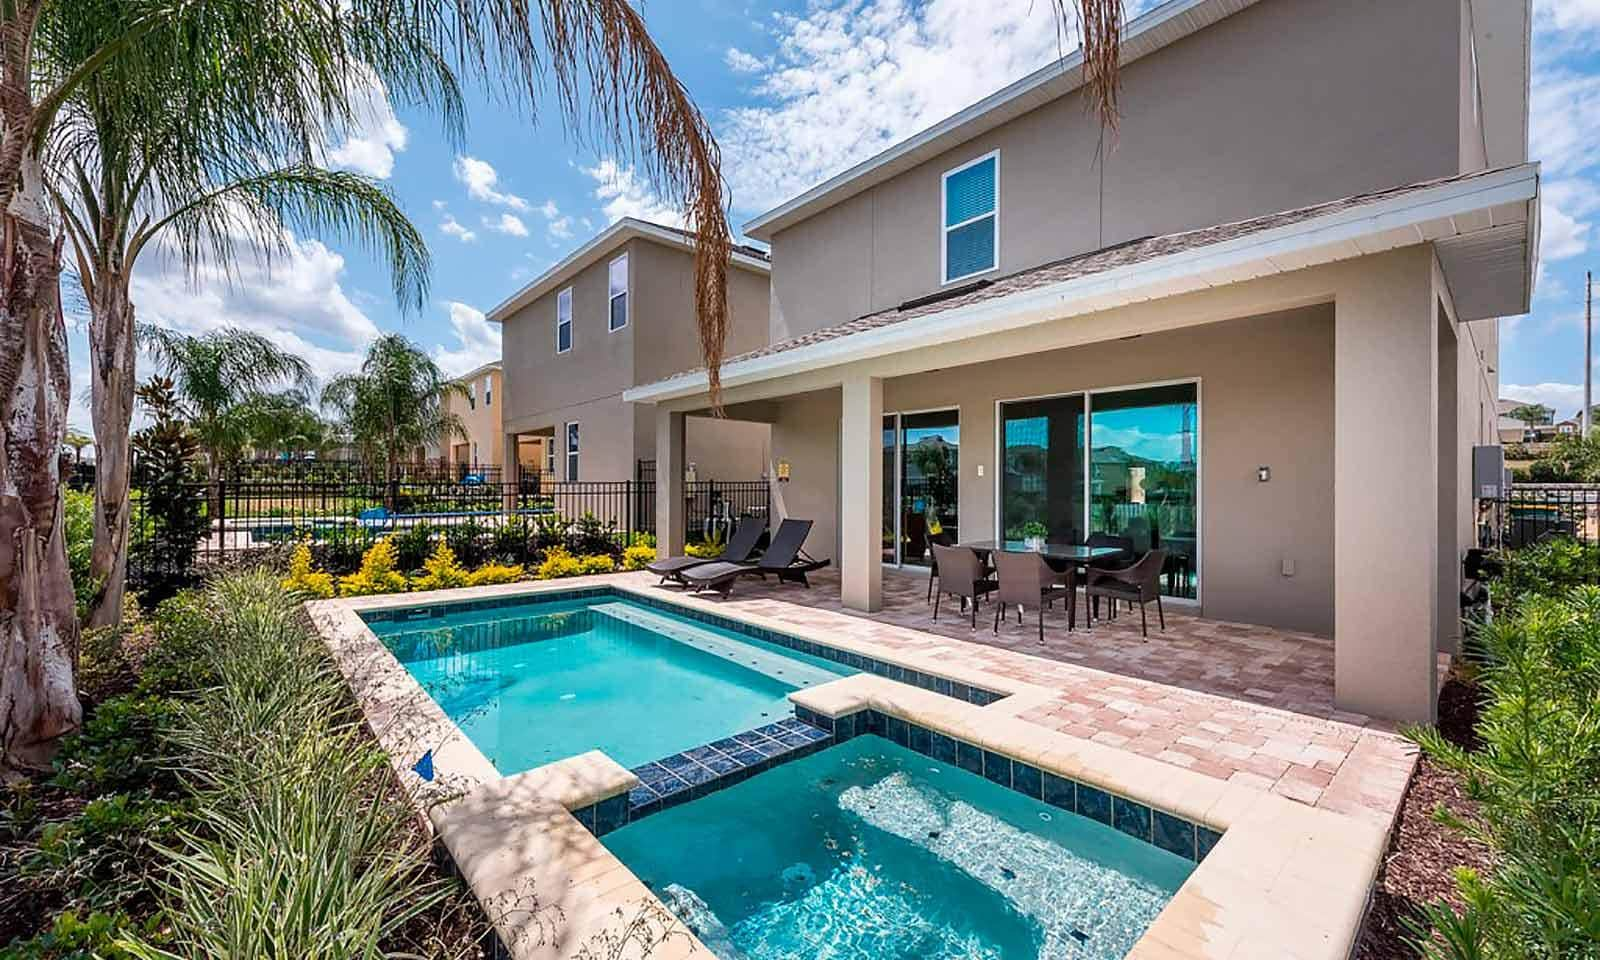 Property Image 2 - Modern Villa with Pool and Games at Encore